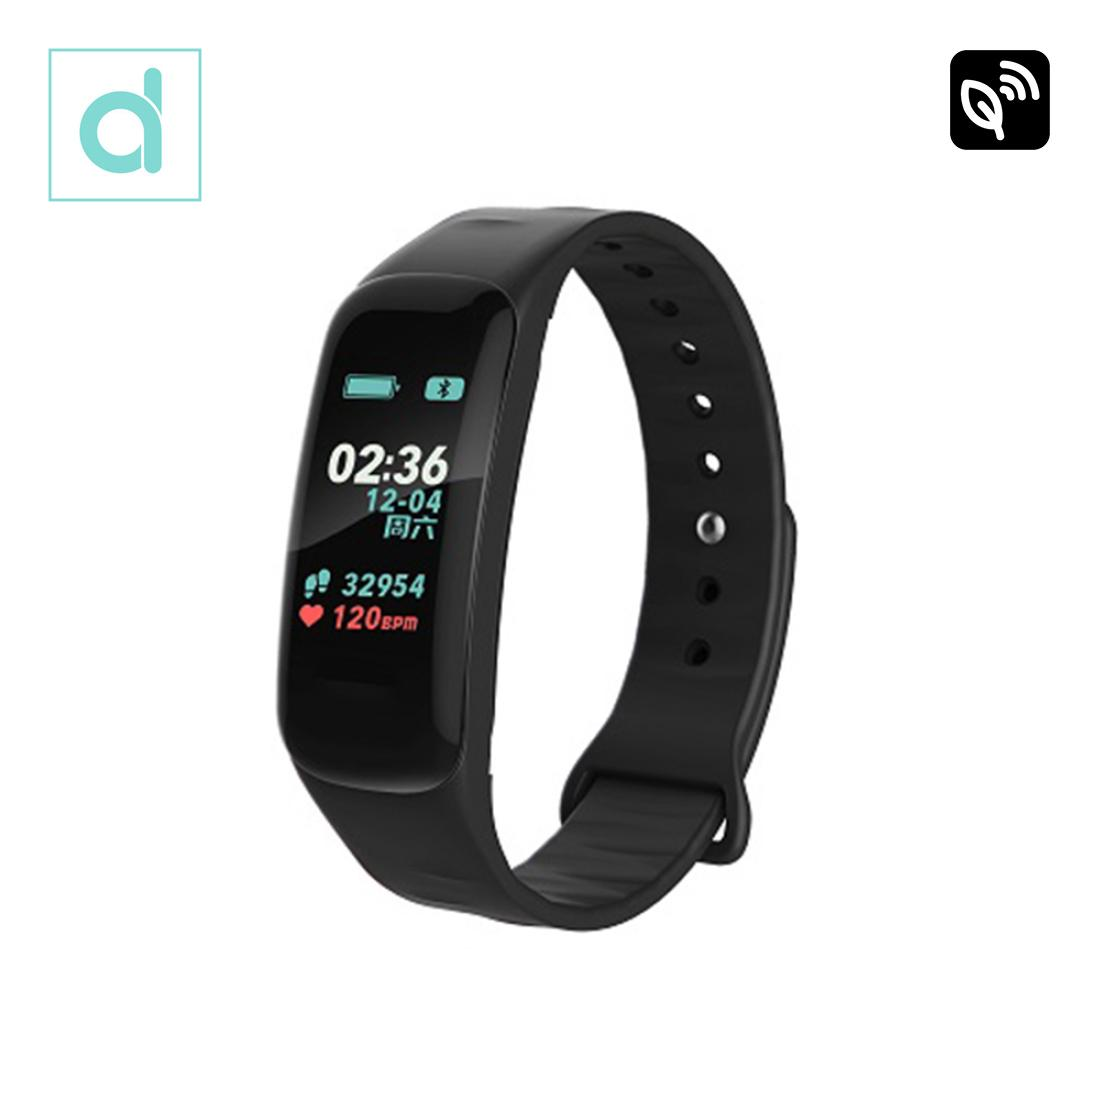 Fitness Tracker For Sale Band Prices Brands Specs In M2 Bluetooth Smart Bracelet Mi 2 Look Heart Rate Monitor Wristband Da Fit Watch Color Display Health With Mobile